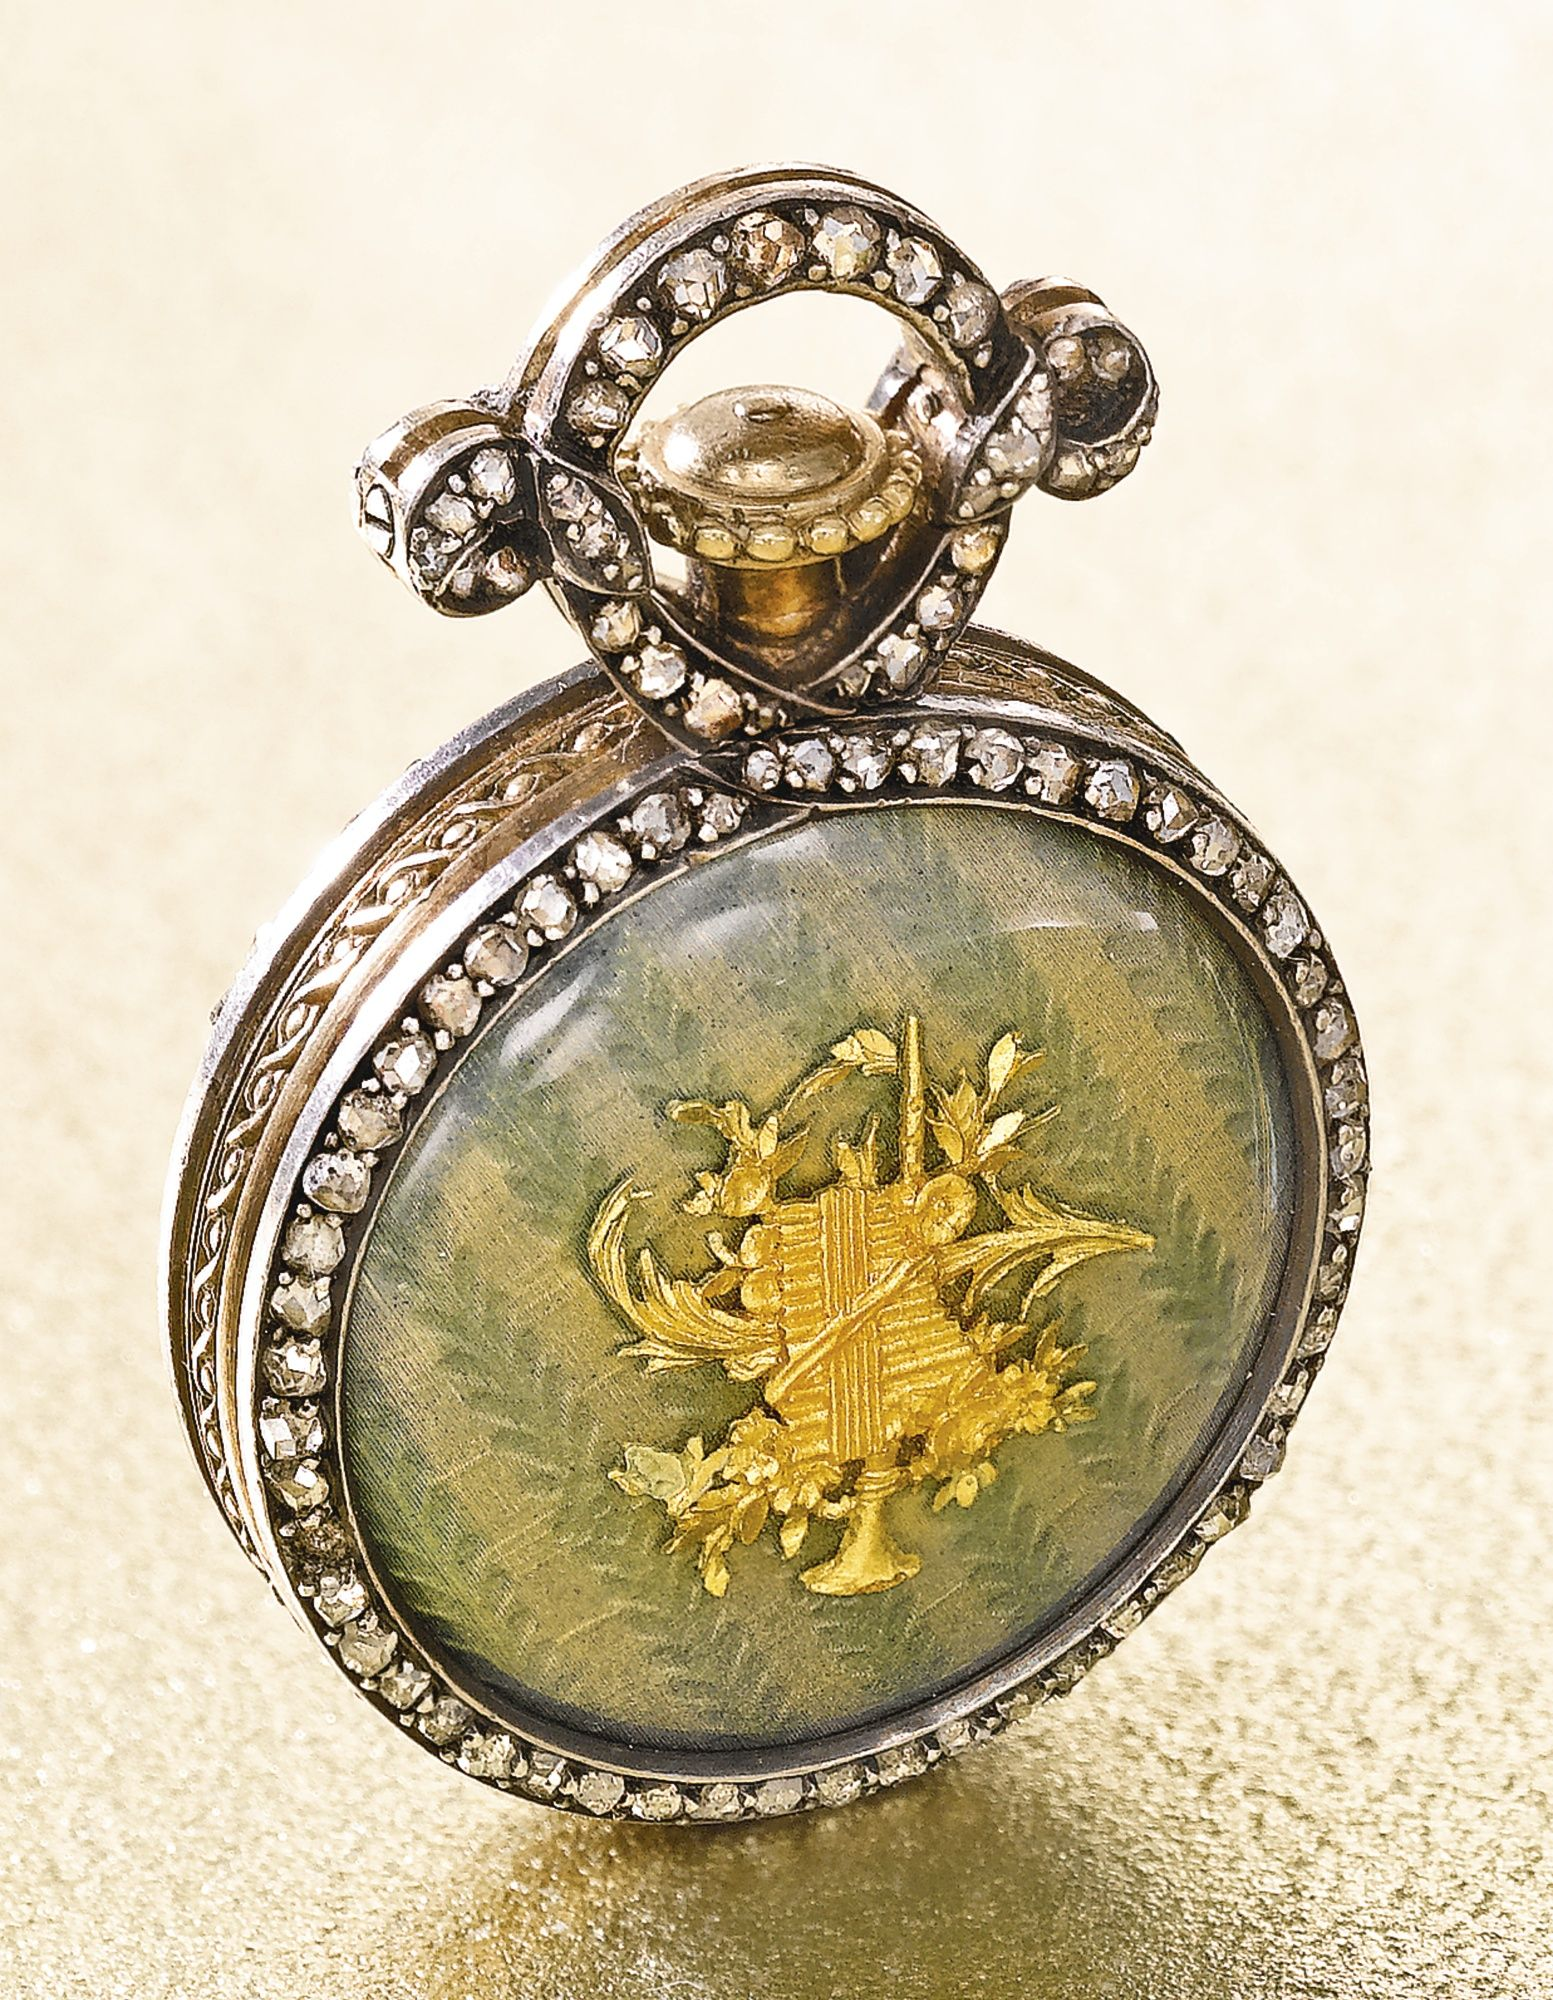 Boucheron a yellow gold enamel and diamond set watch circa 1890 boucheron a yellow gold enamel and diamond set watch circa 1890 mozeypictures